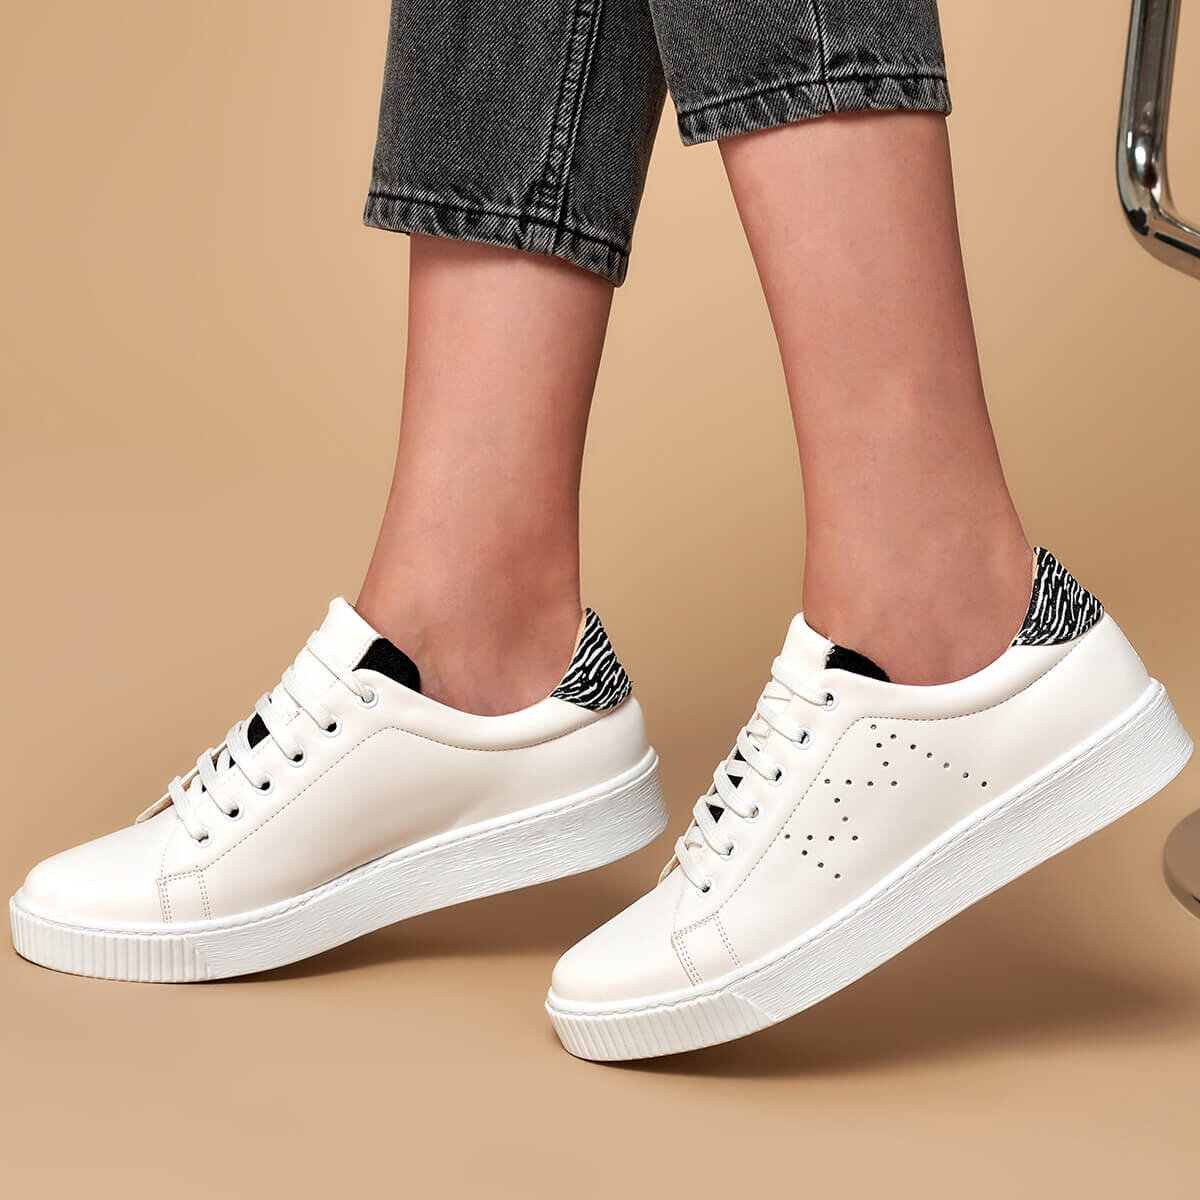 FLO 19K-123 White Women 'S Sneaker Shoes BUTIGO